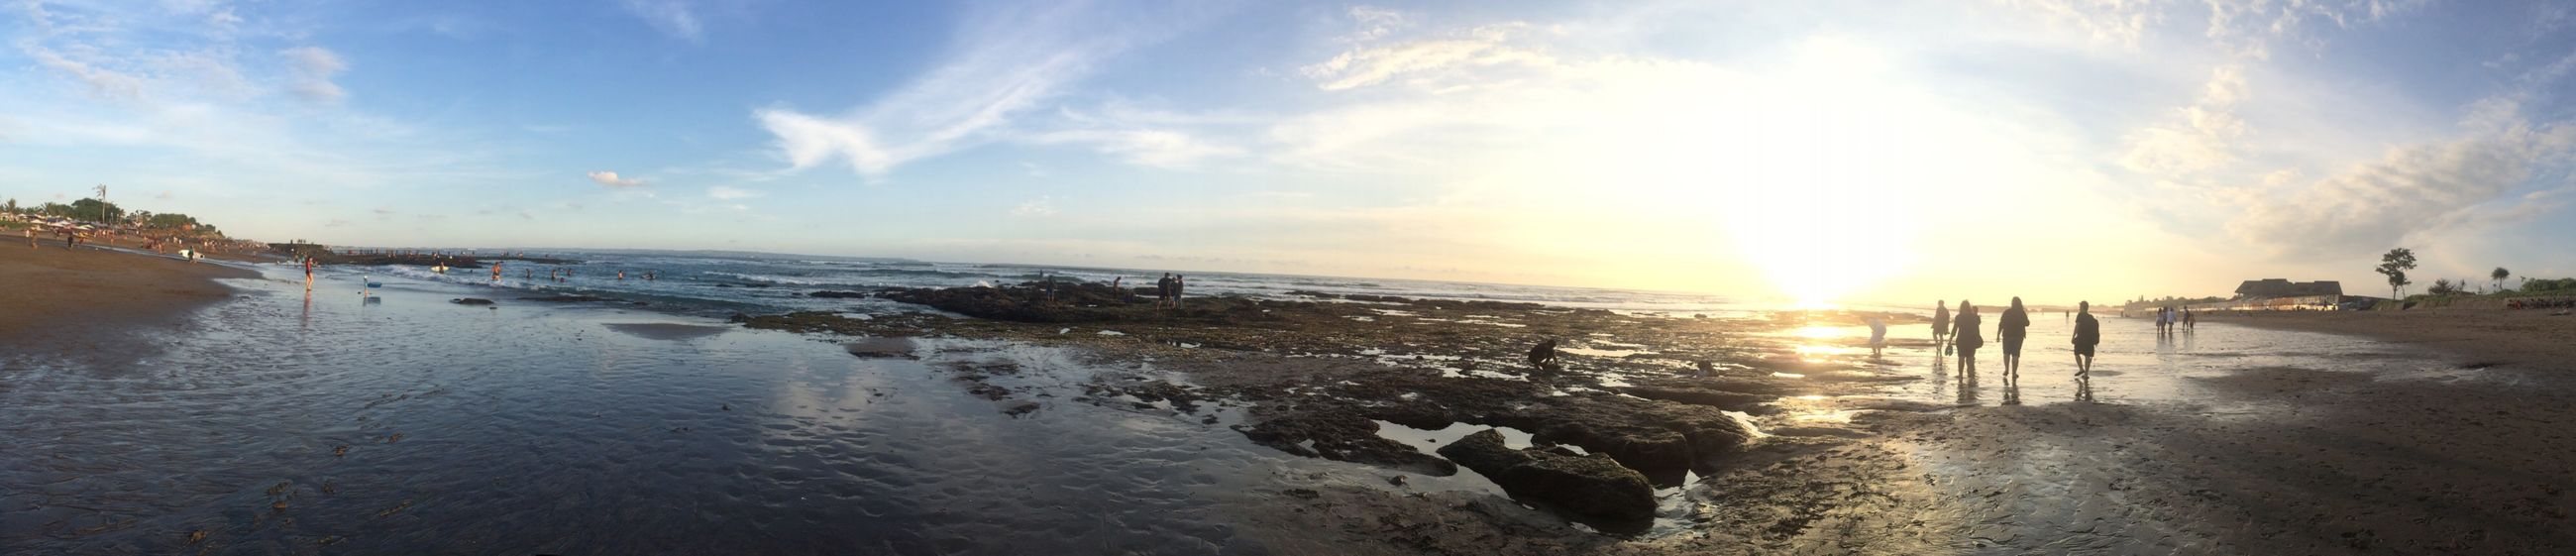 Beach Water Sea Beach Tranquil Scene Sunset Scenics Horizon Over Water Beauty In Nature Tranquility Sky Shore Nature Panoramic Idyllic Sun Cloud - Sky Outdoors Calm Waterfront Coastline Iphone5s Iphone5s Photography